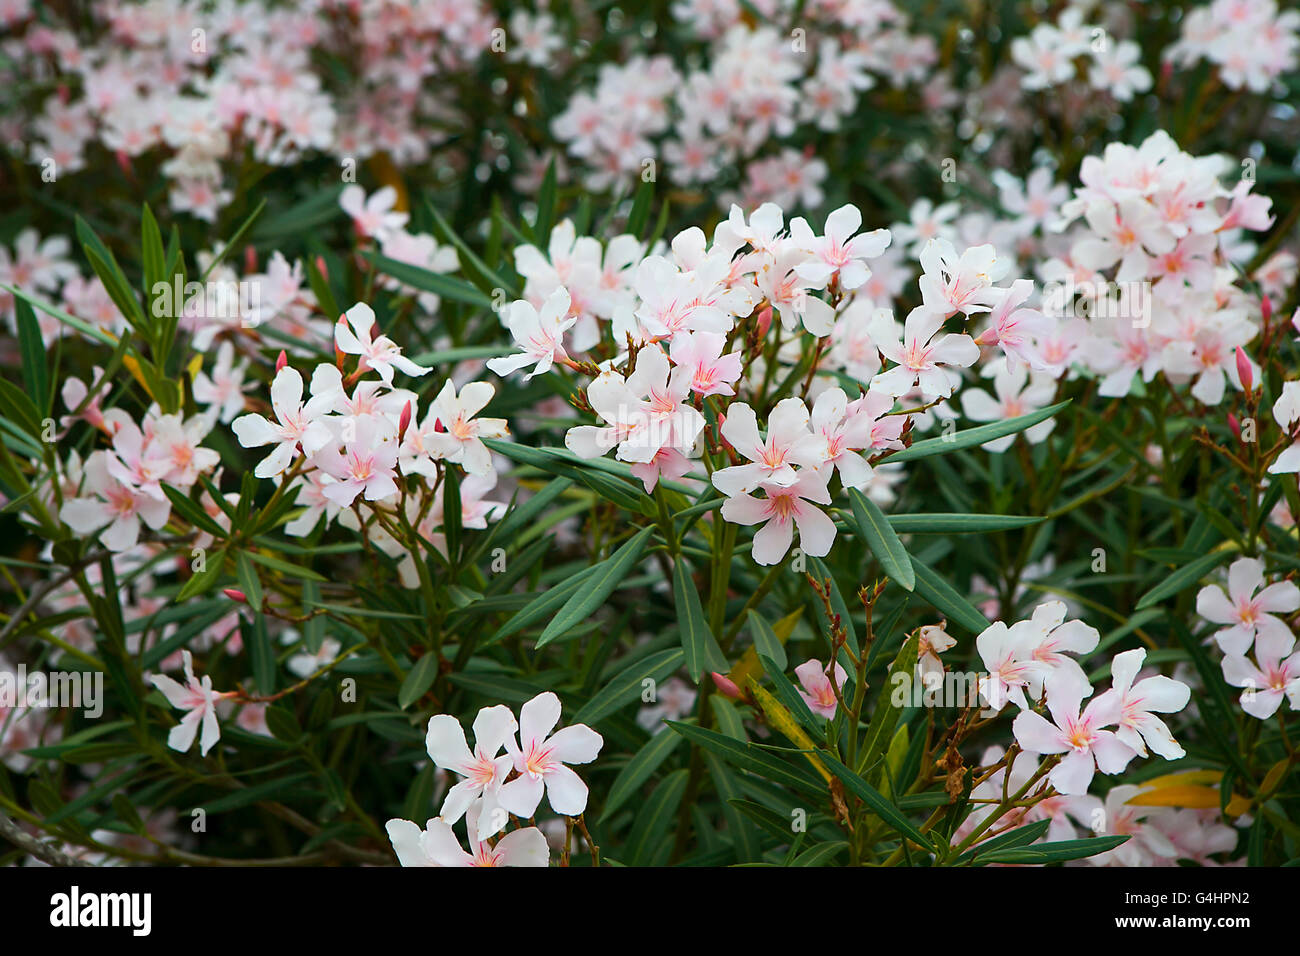 Oleander blossom stock photos oleander blossom stock images page white oleander flowers as a background stock image mightylinksfo